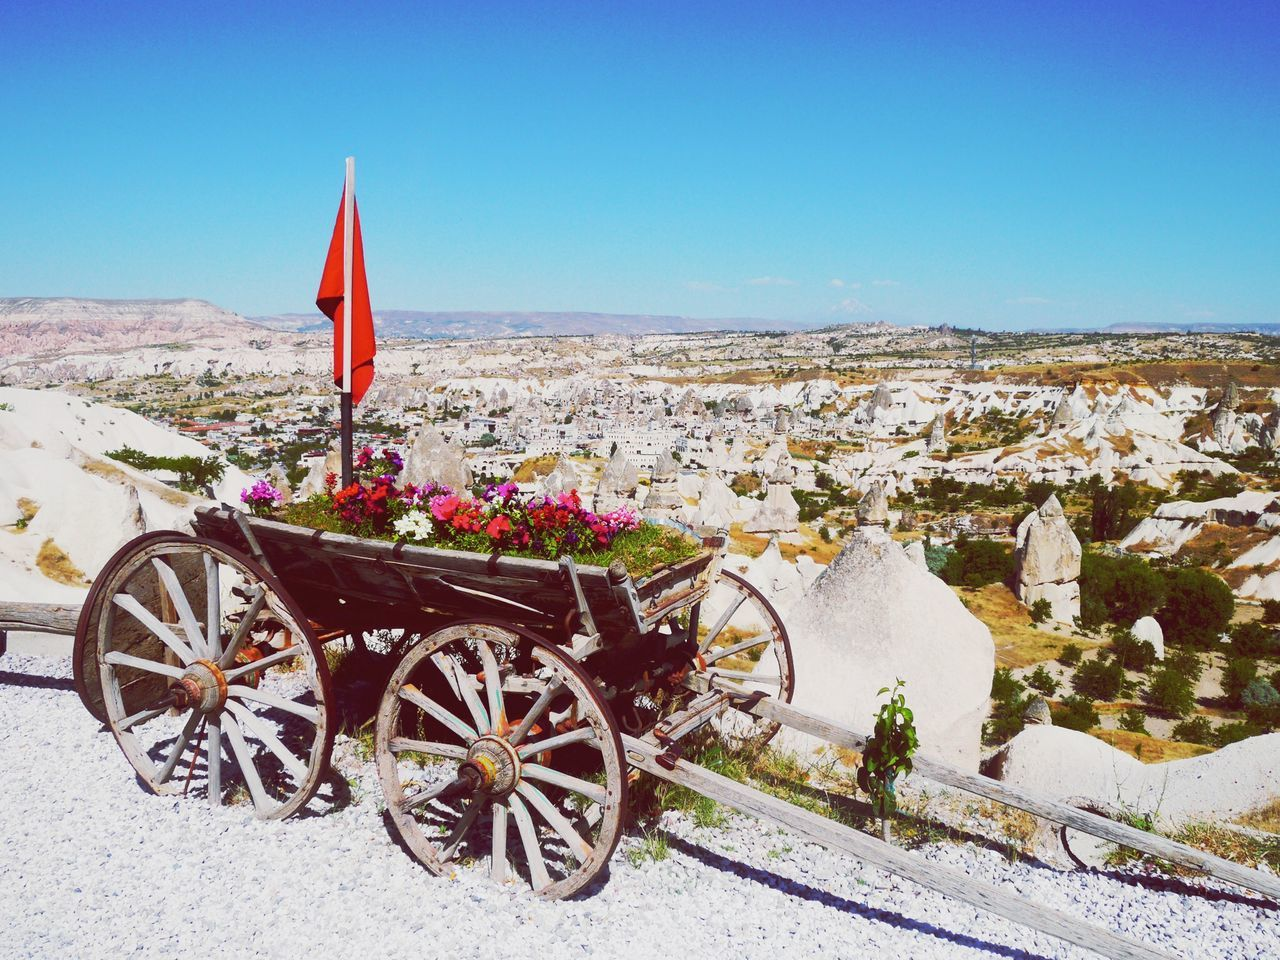 Wagon With Flowerbed